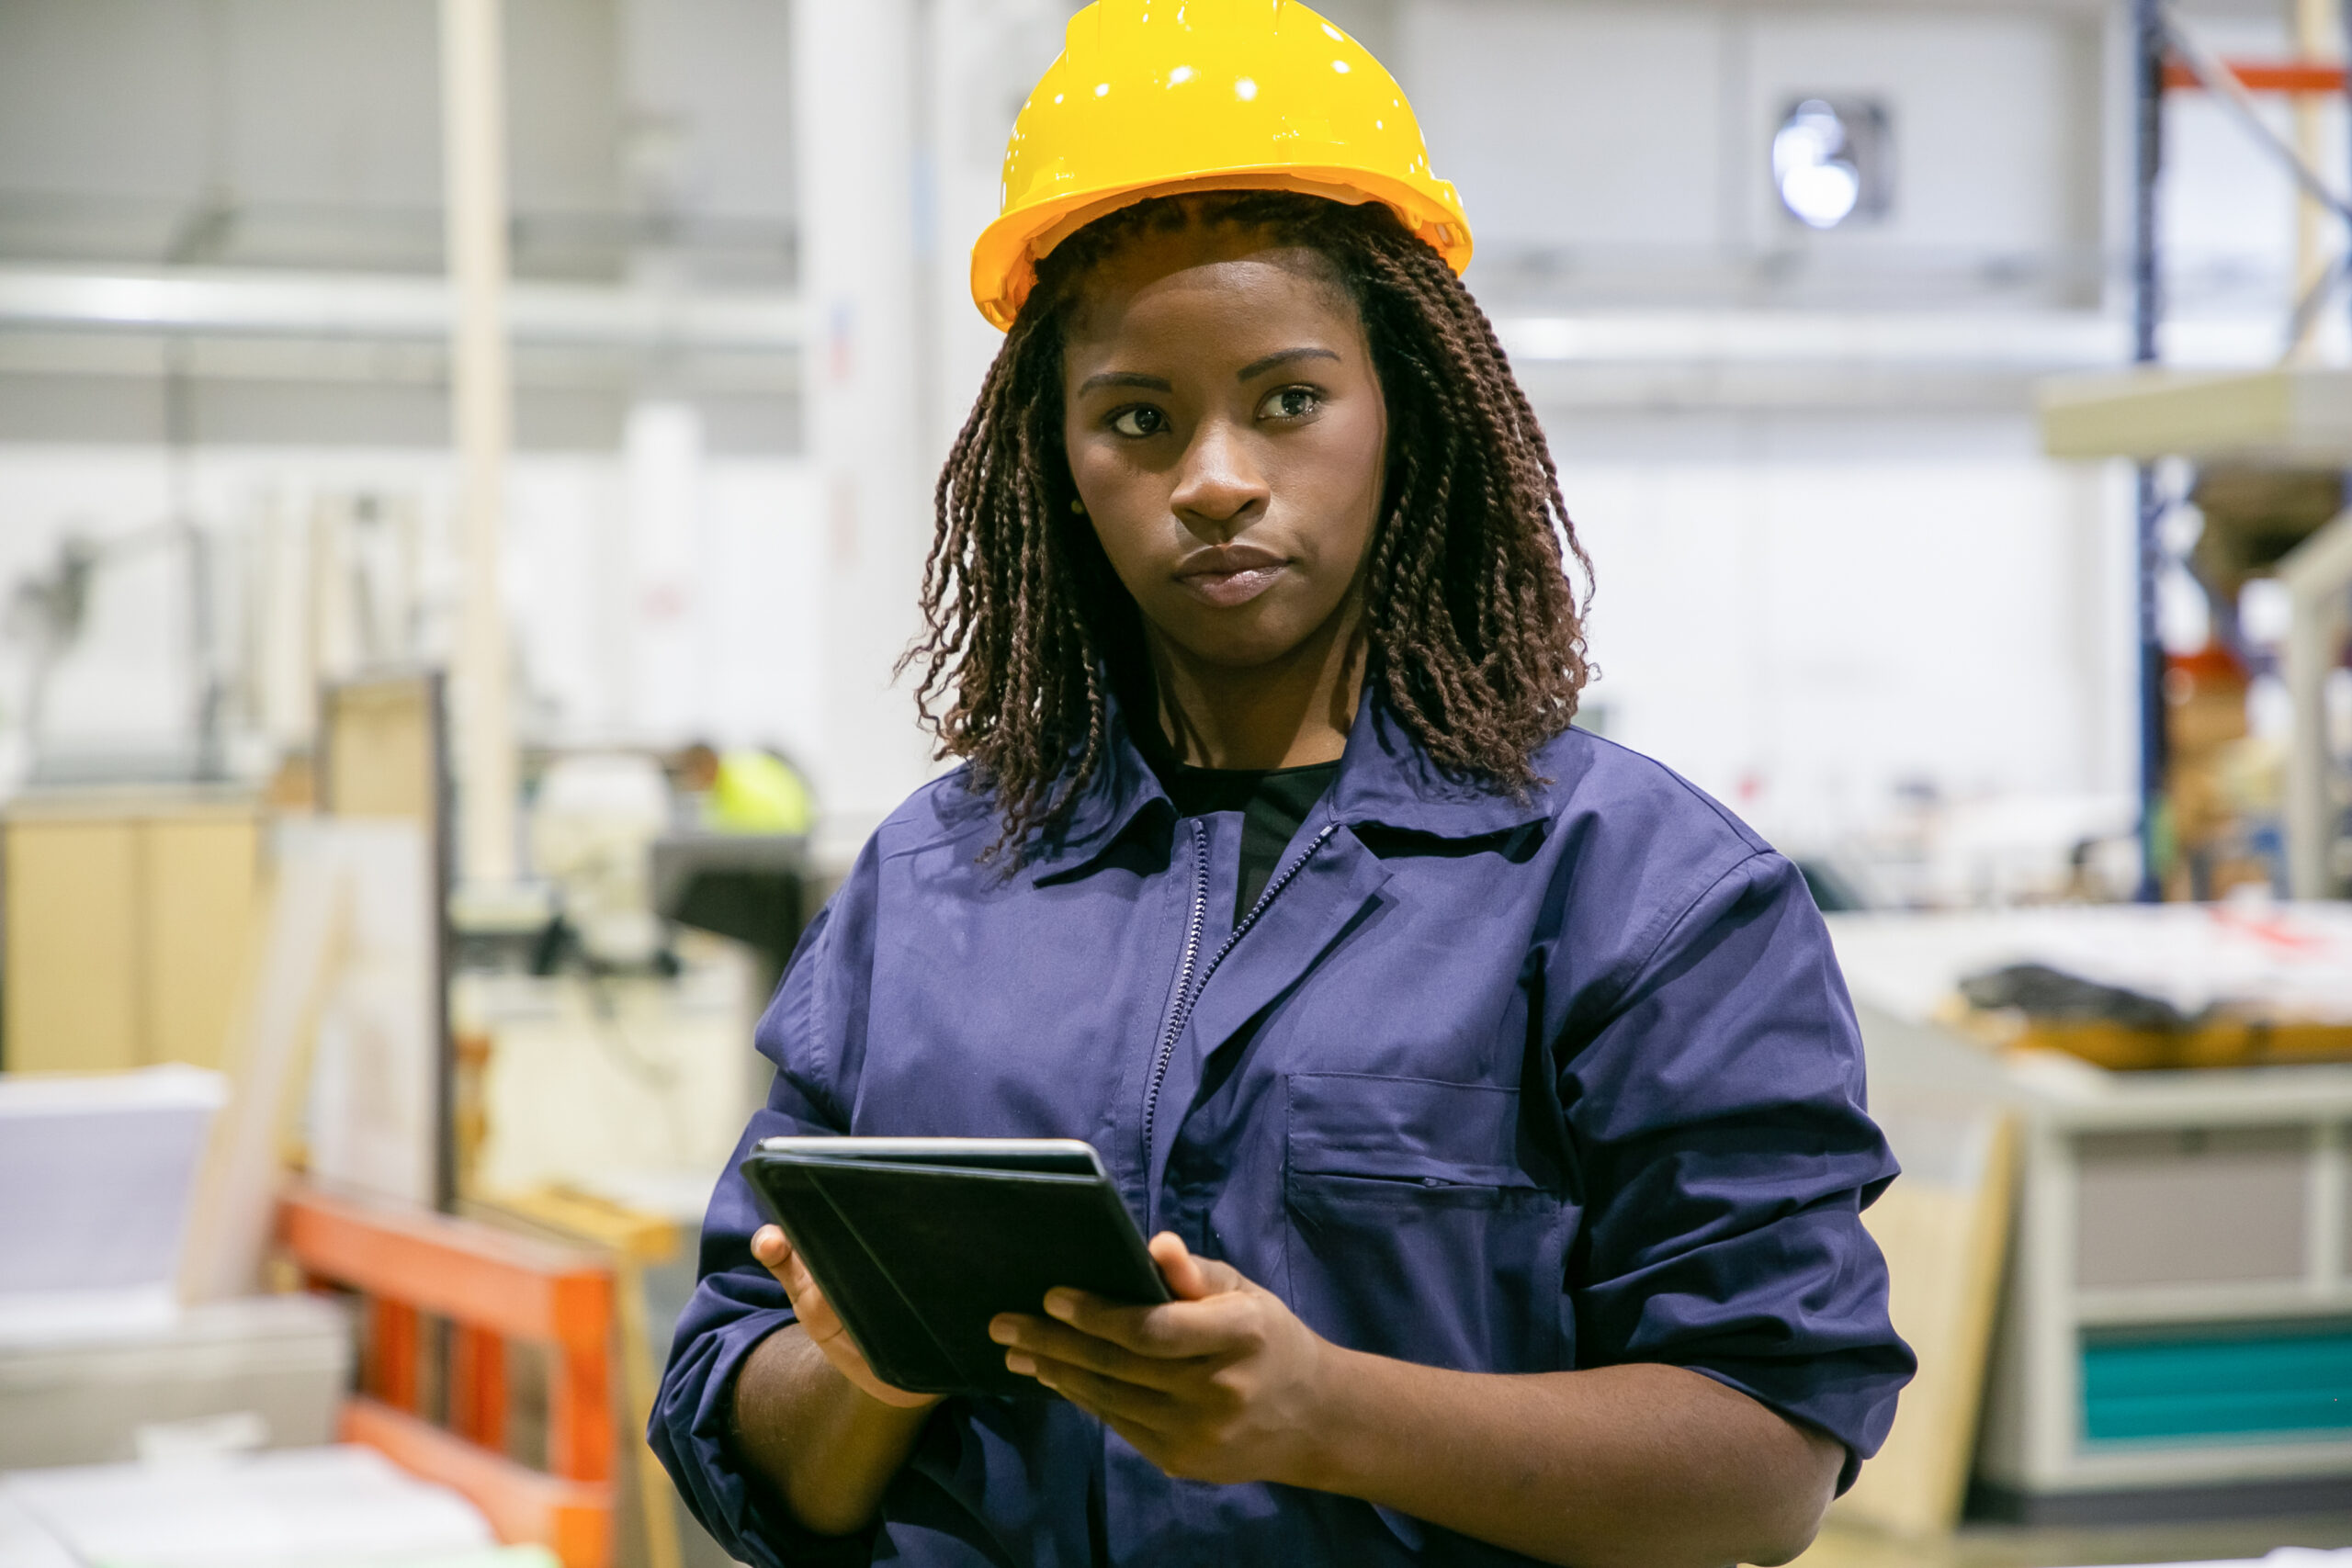 Content female plant worker standing with tablet and looking away. Portrait of pensive African American woman doing her job, thinking and wearing uniform. Manufacture and digital technology concept